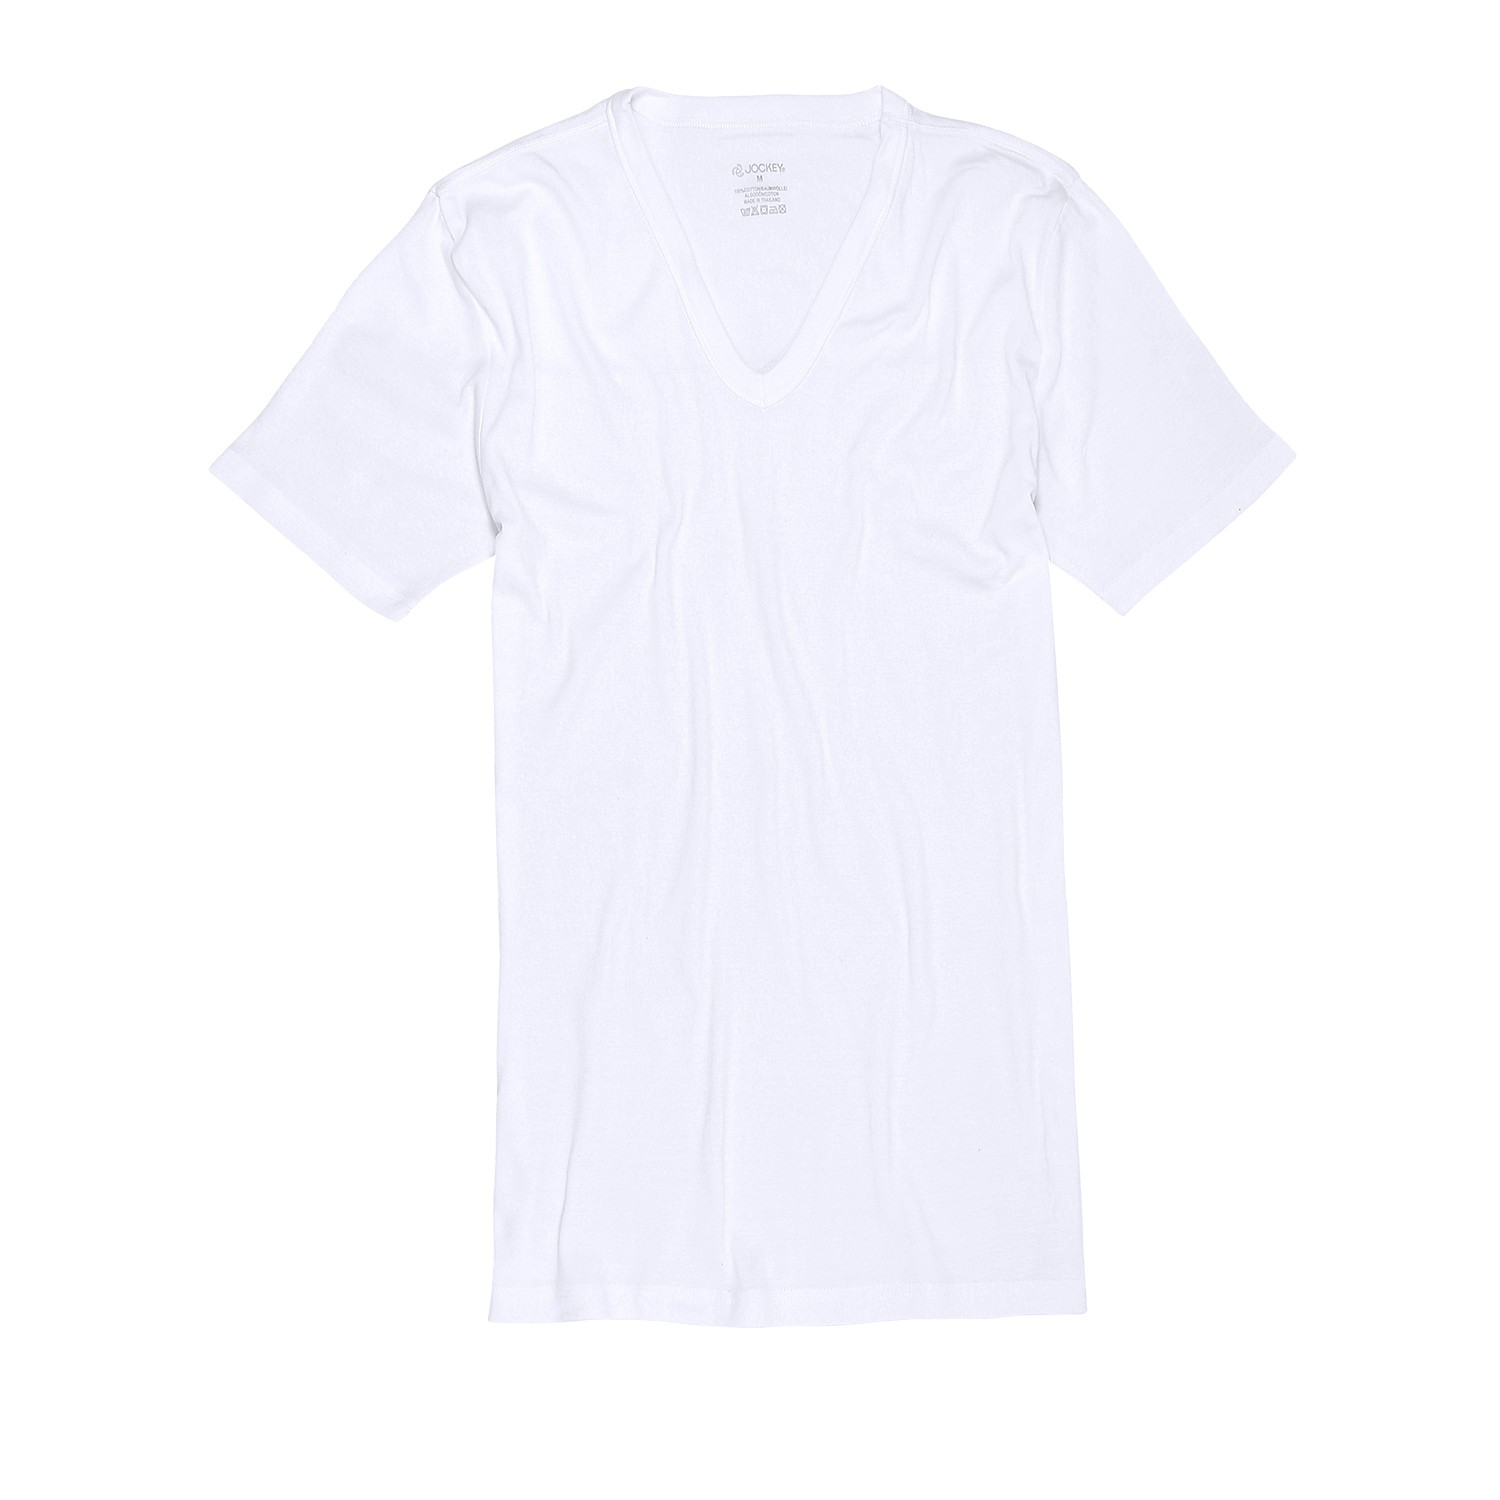 Detail Image to White undershirts with v-neck double pack from Jockey in oversize until 6XL